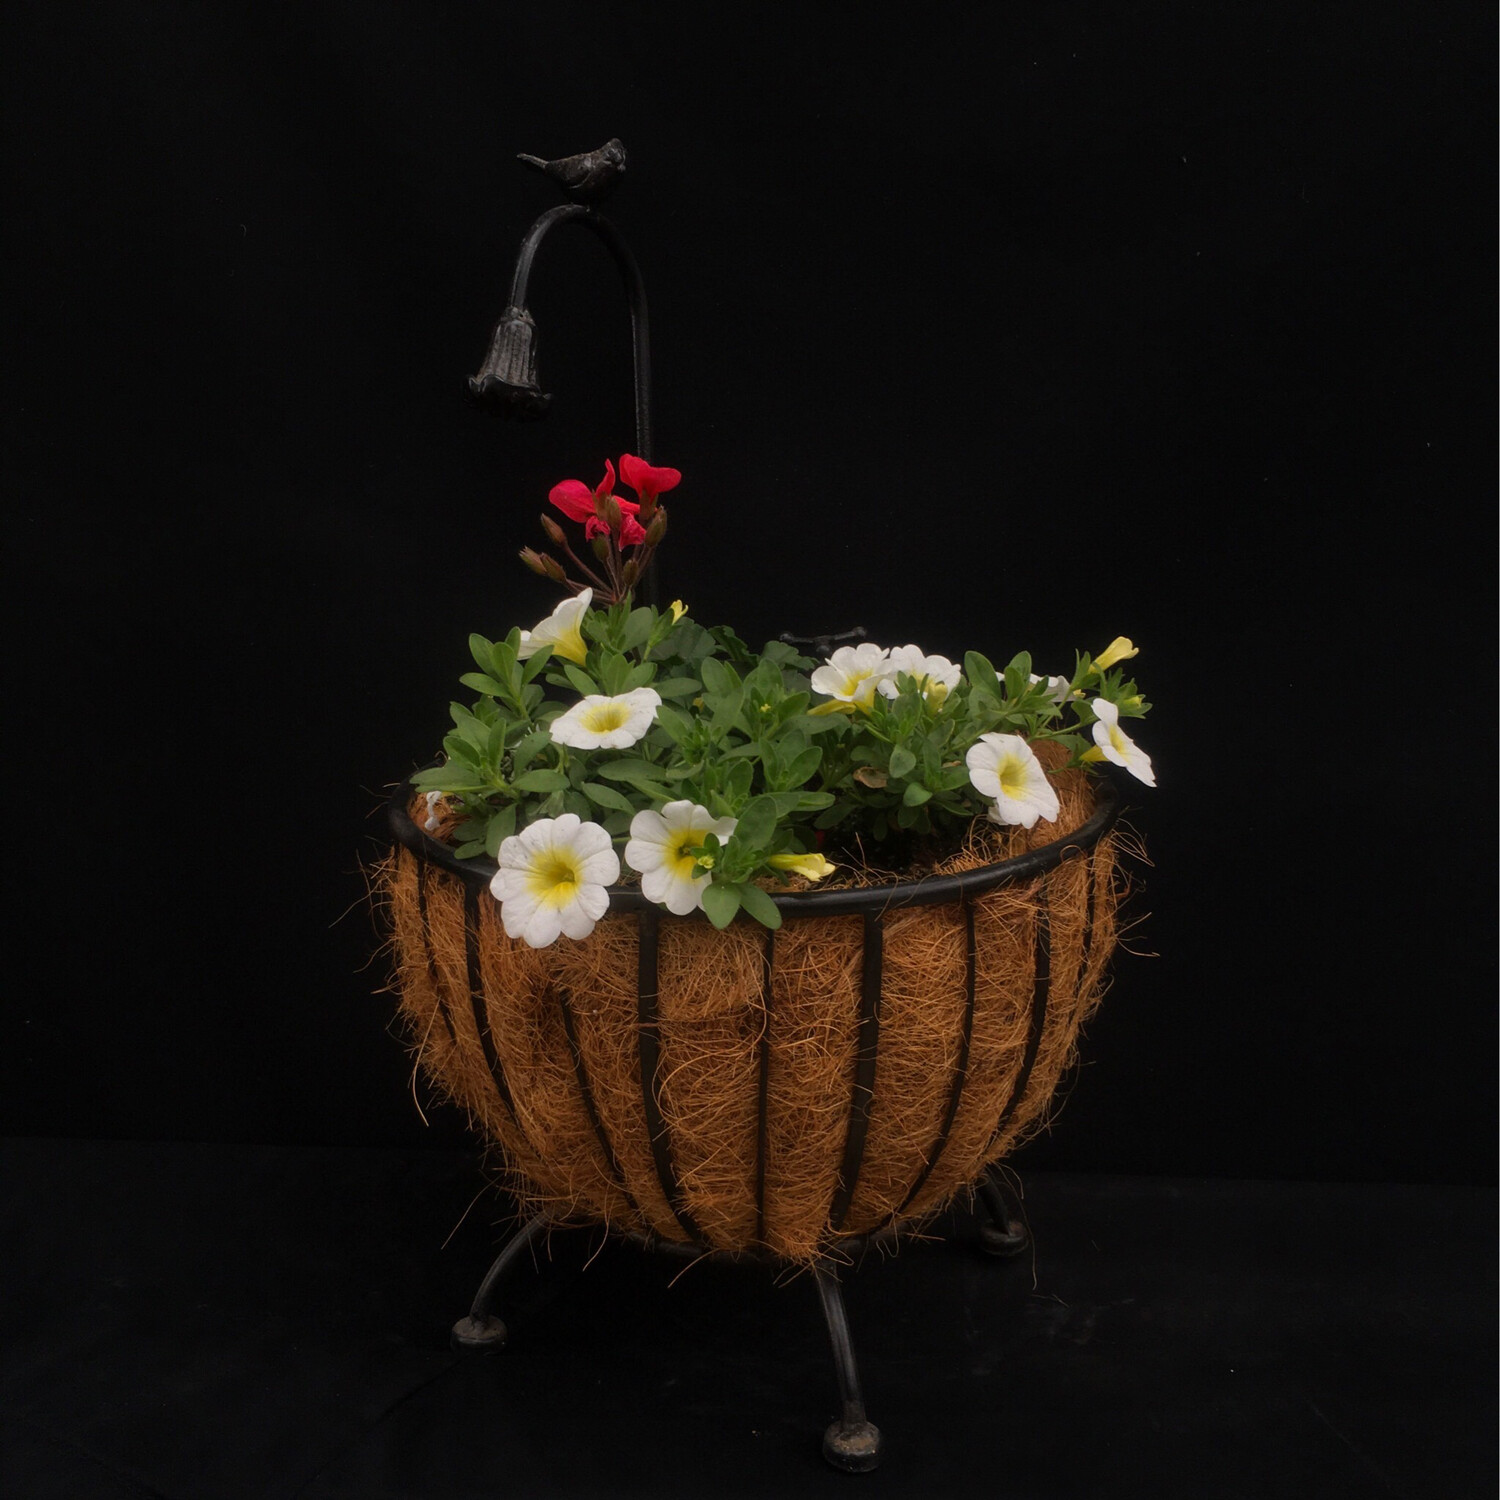 Bird Bath Planter With White And Coral Flowers - Full Sun